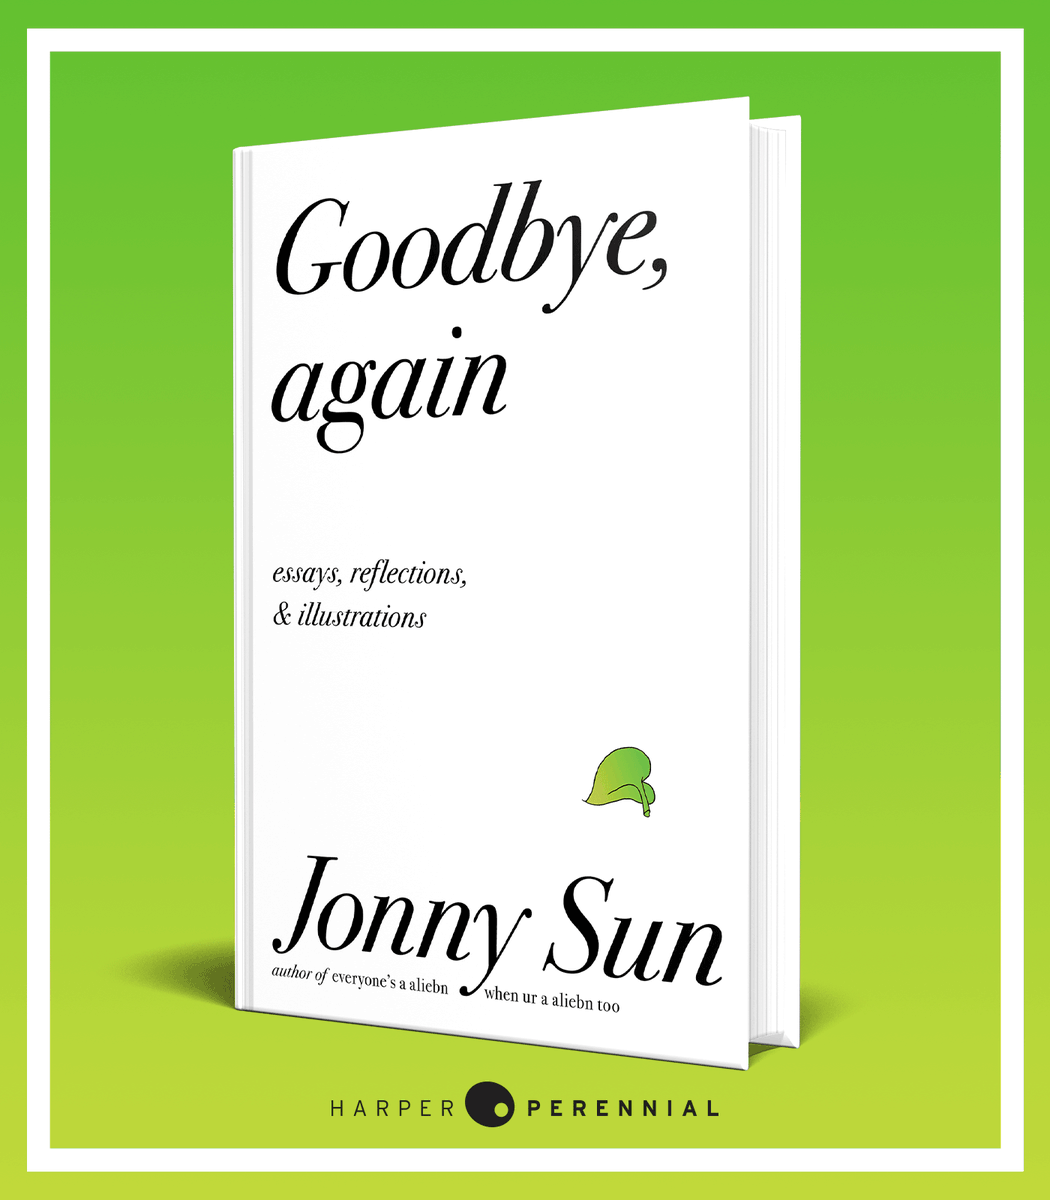 Cover of the book Goodbye, again